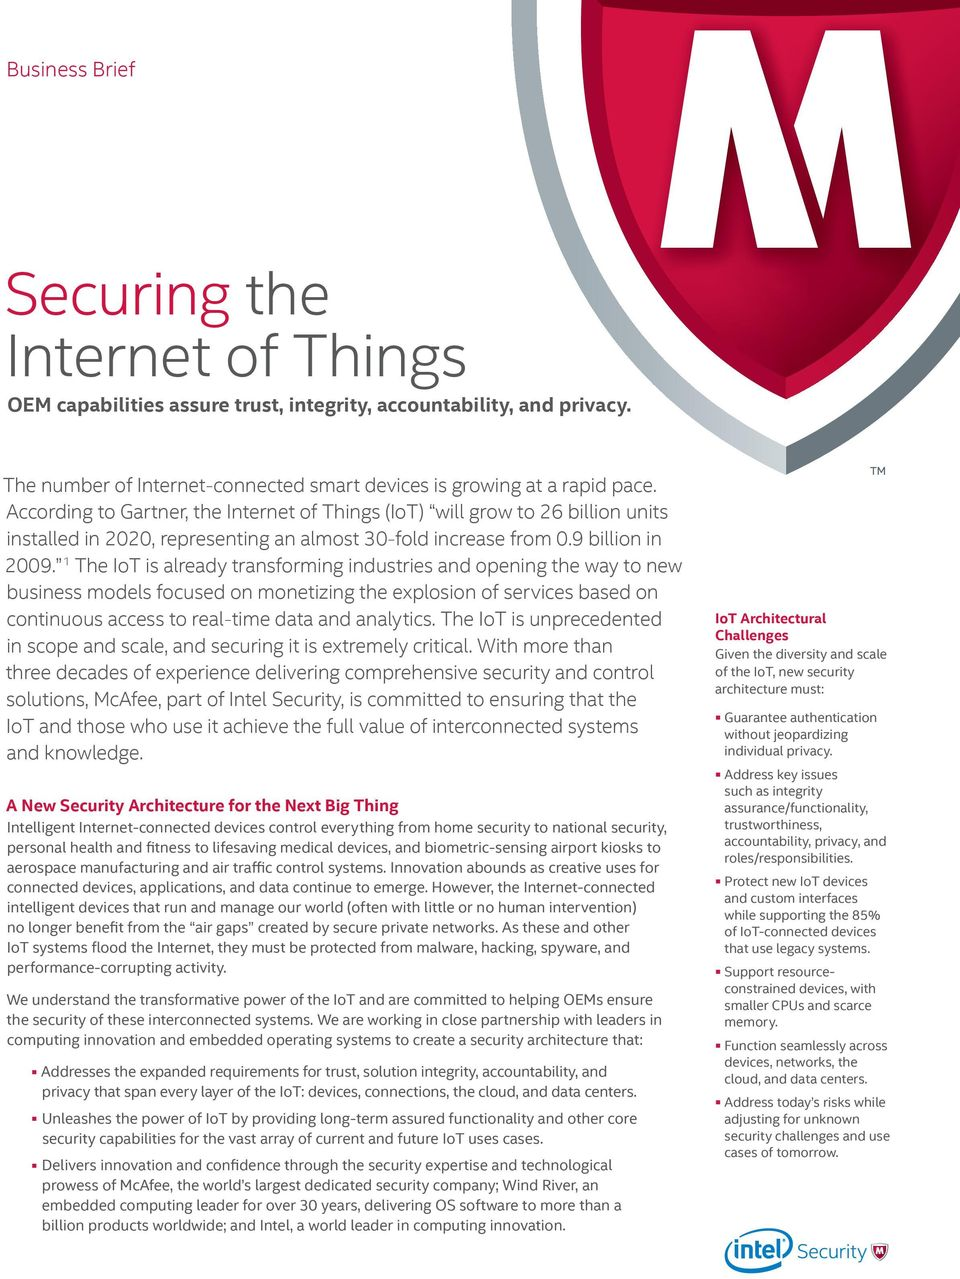 1 The IoT is already transforming industries and opening the way to new business models focused on monetizing the explosion of services based on continuous access to real-time data and analytics.